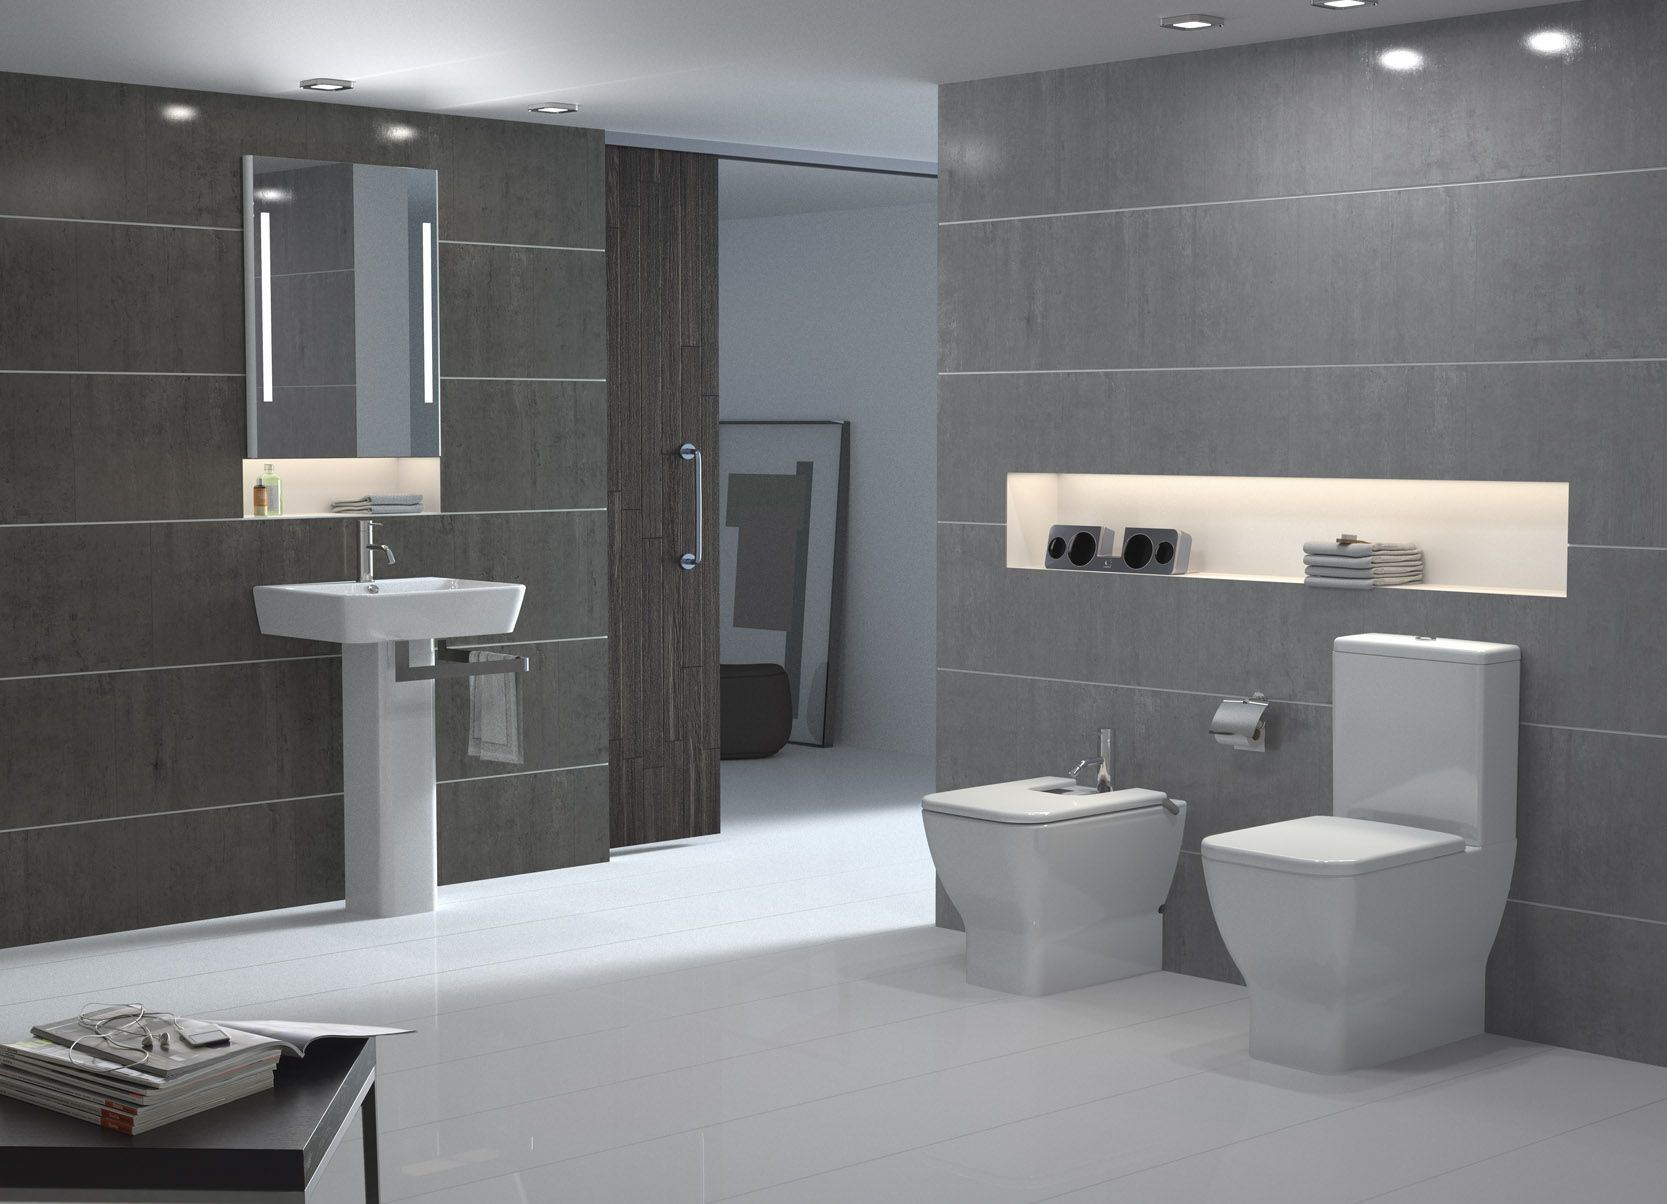 Office Bathrooms Modern Closet Style Bathroom Decorating